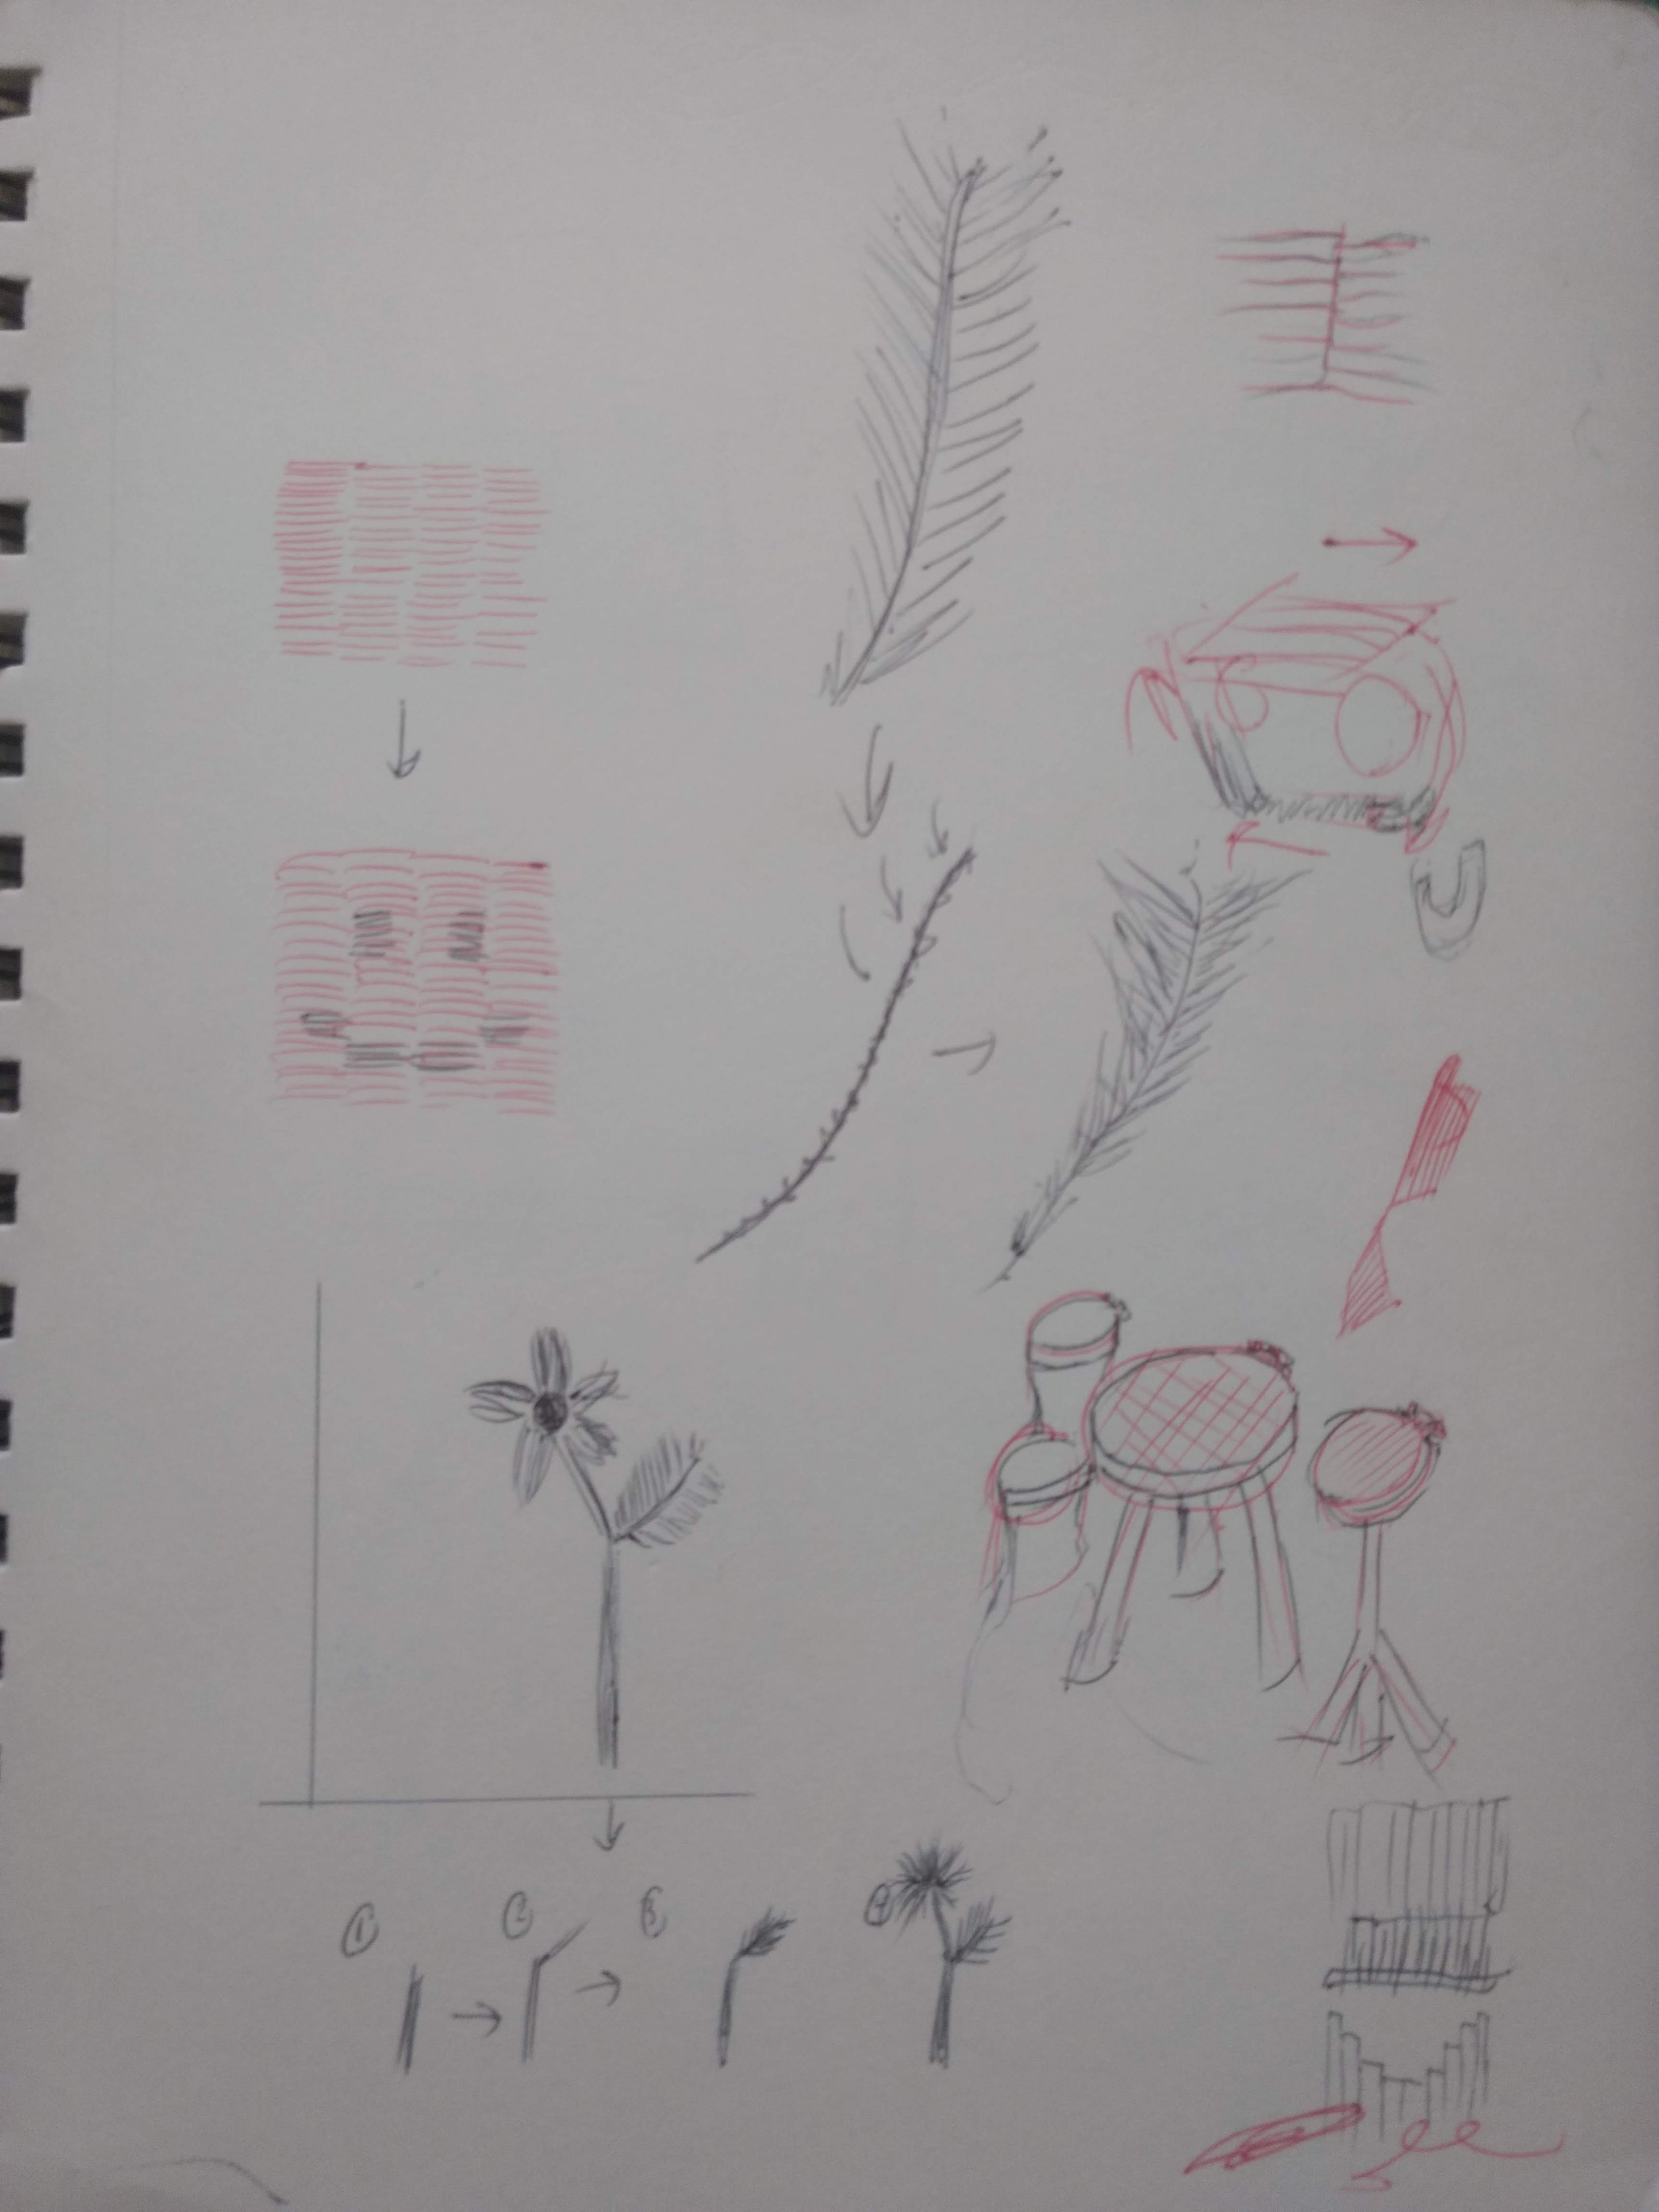 Sketch page of some possible uses/ ideas to prototype